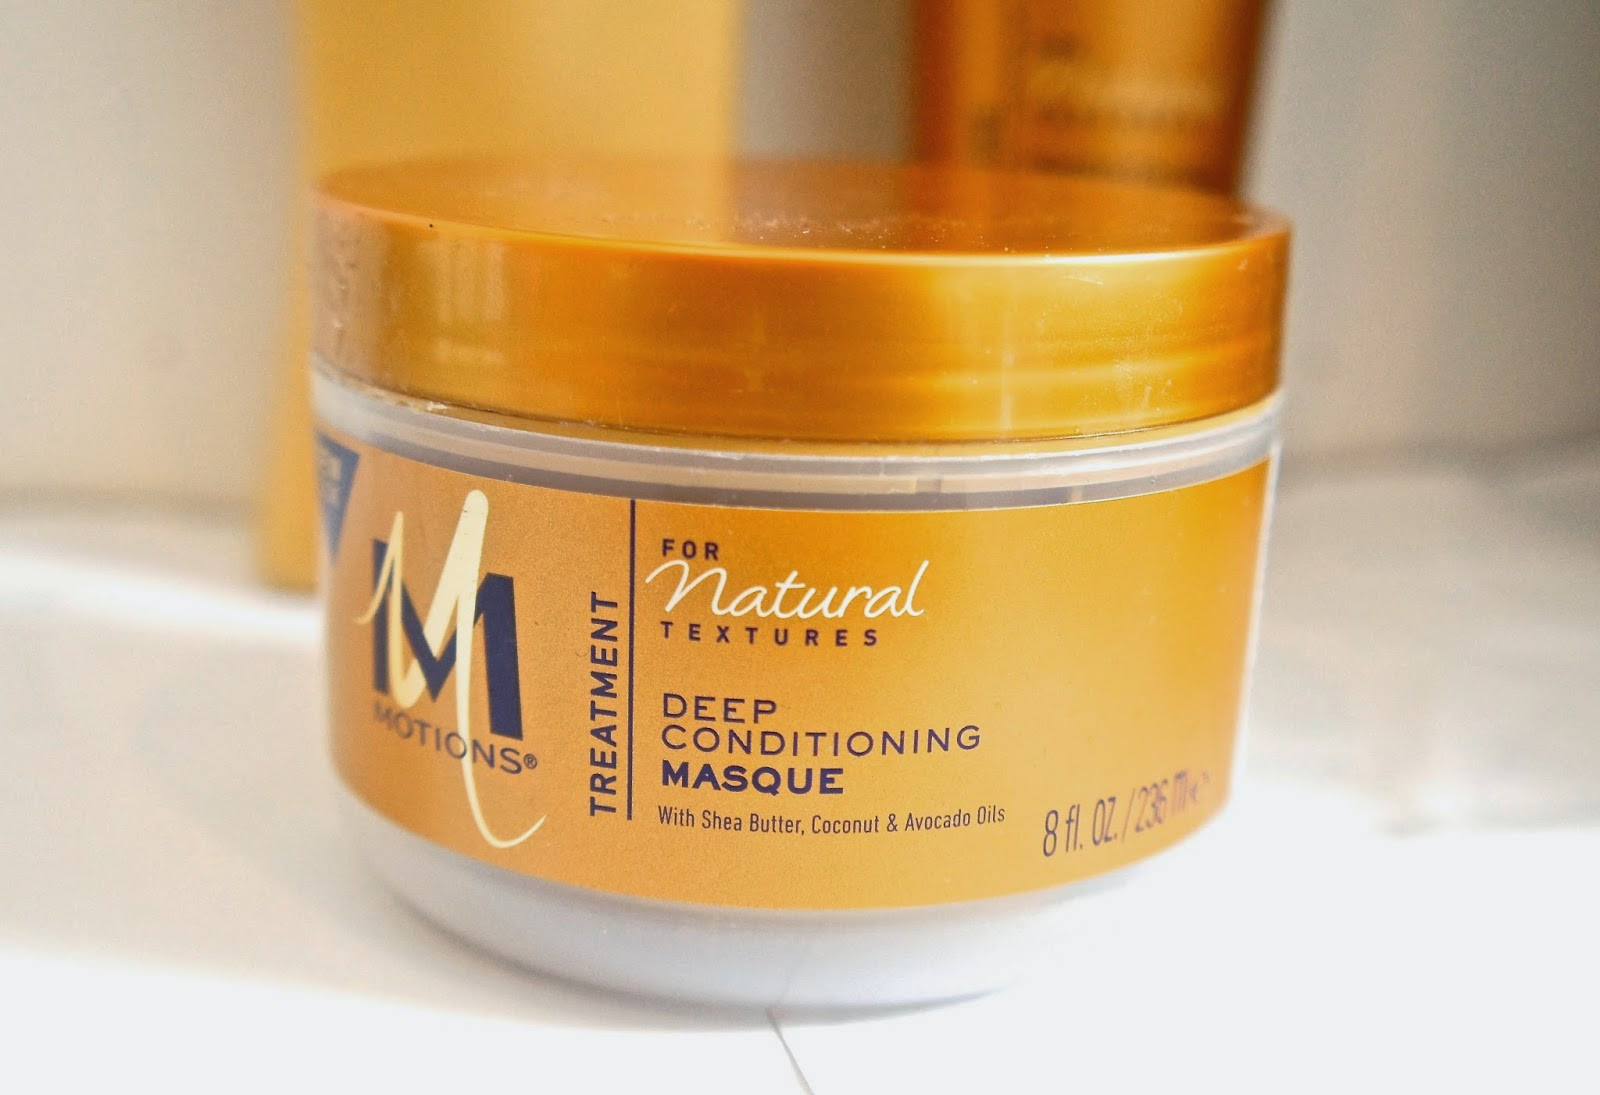 Motions For Natural Textures; Deep Conditioning Masque Review